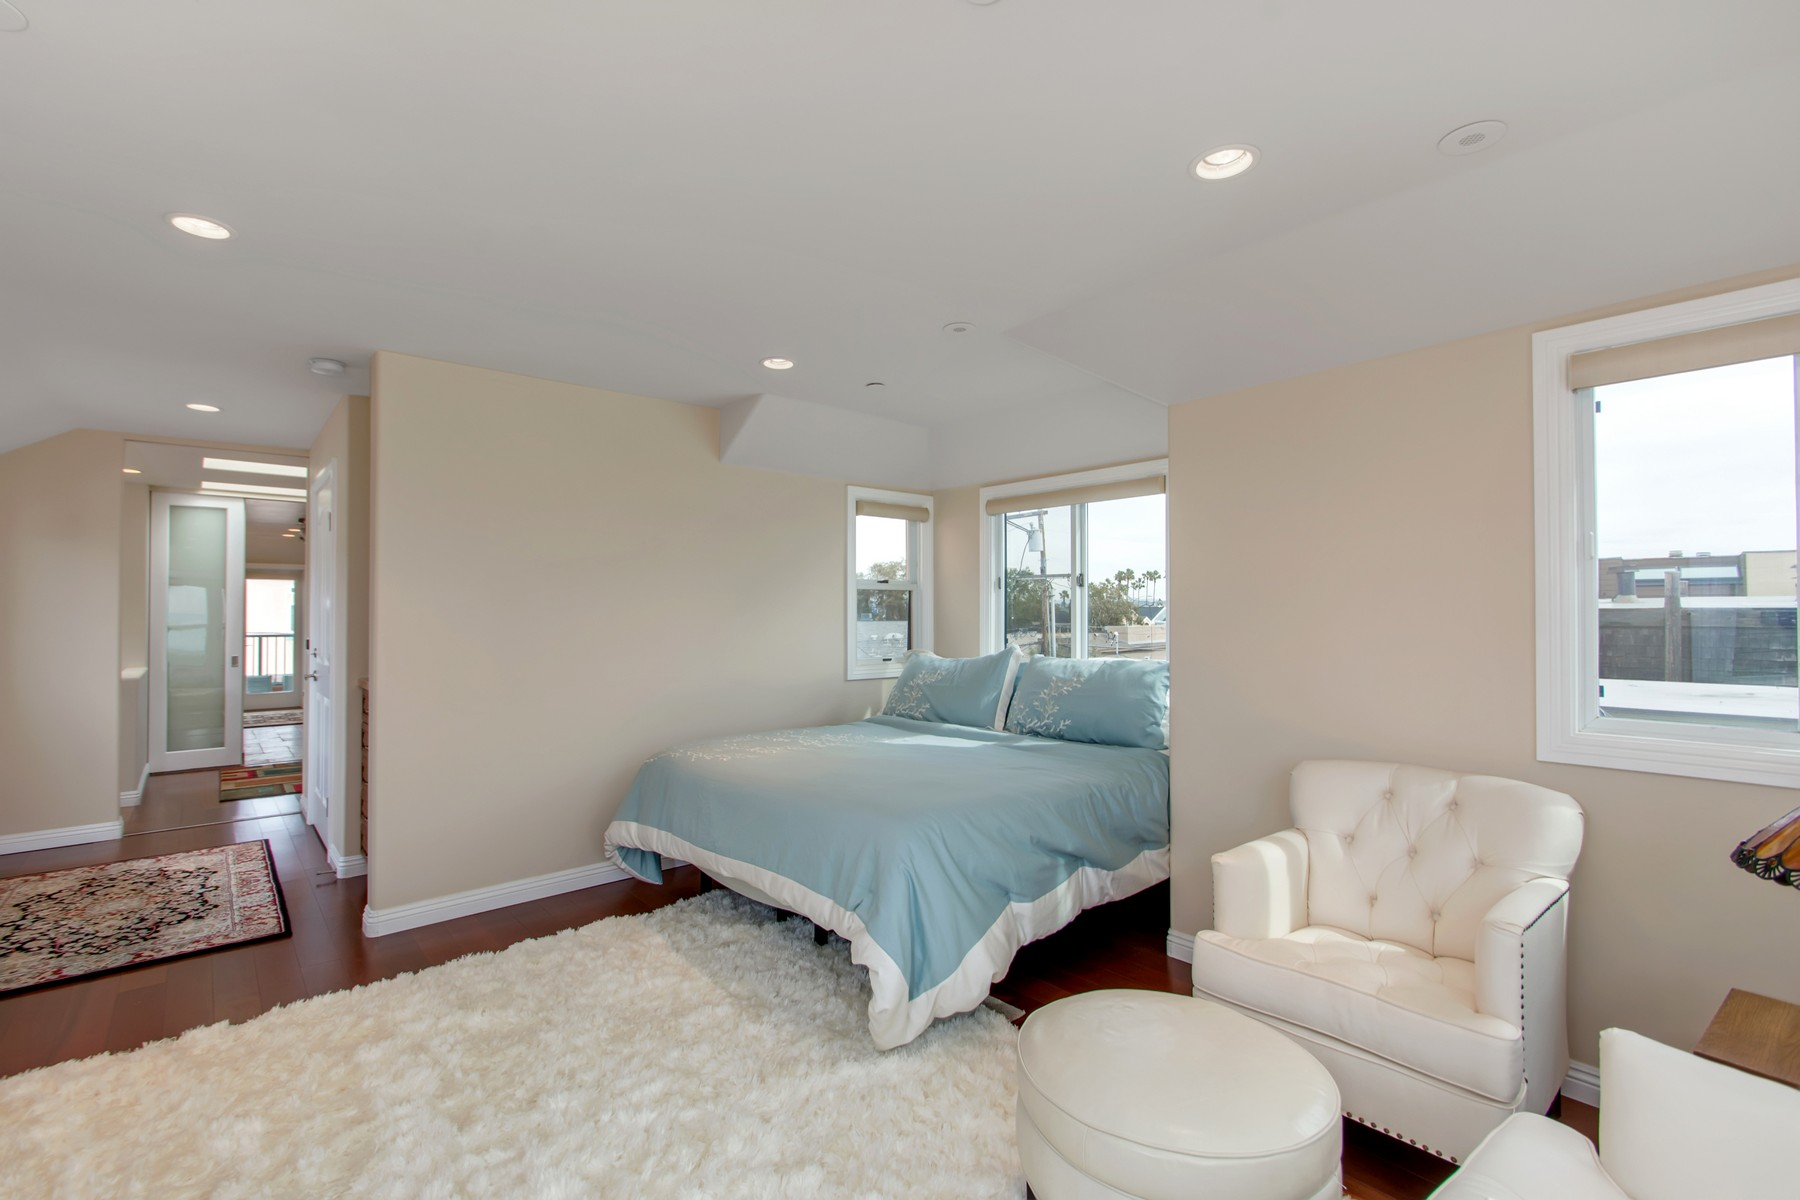 Additional photo for property listing at 2636 Ocean Front Walk  San Diego, California 92109 United States